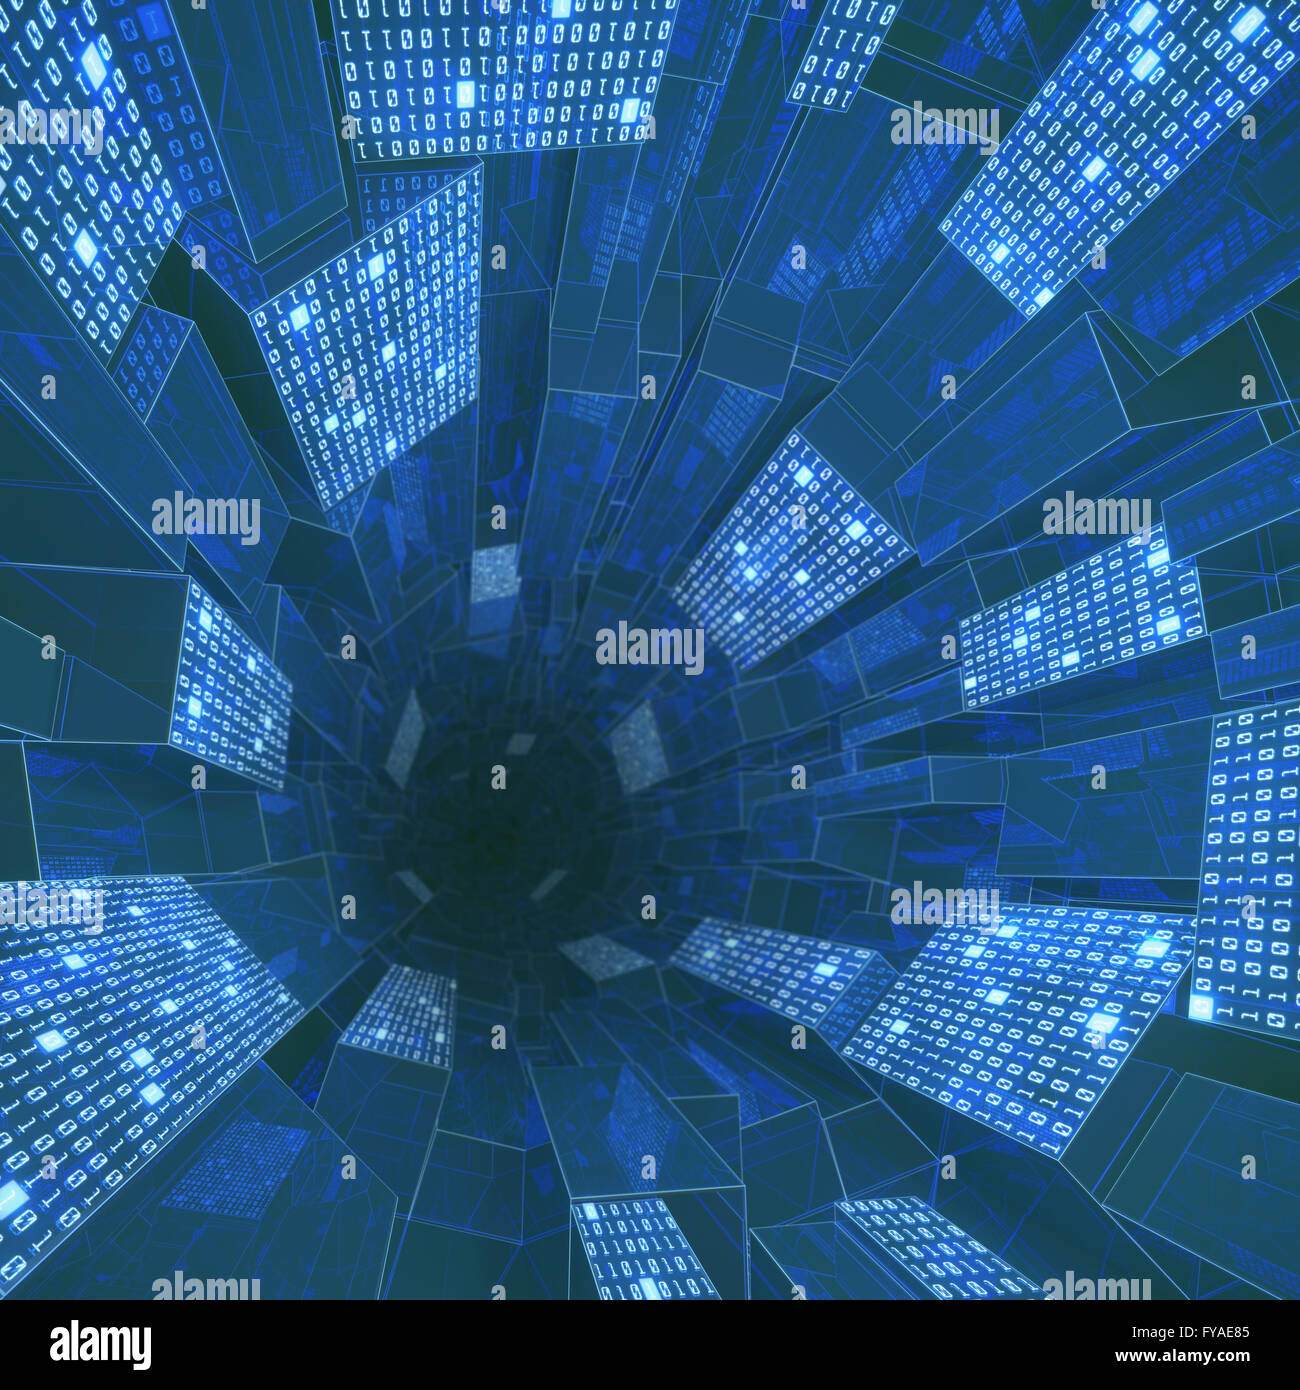 Tunnel composed by zeros and ones in a concept of cloud computing, data storage and processing. - Stock Image